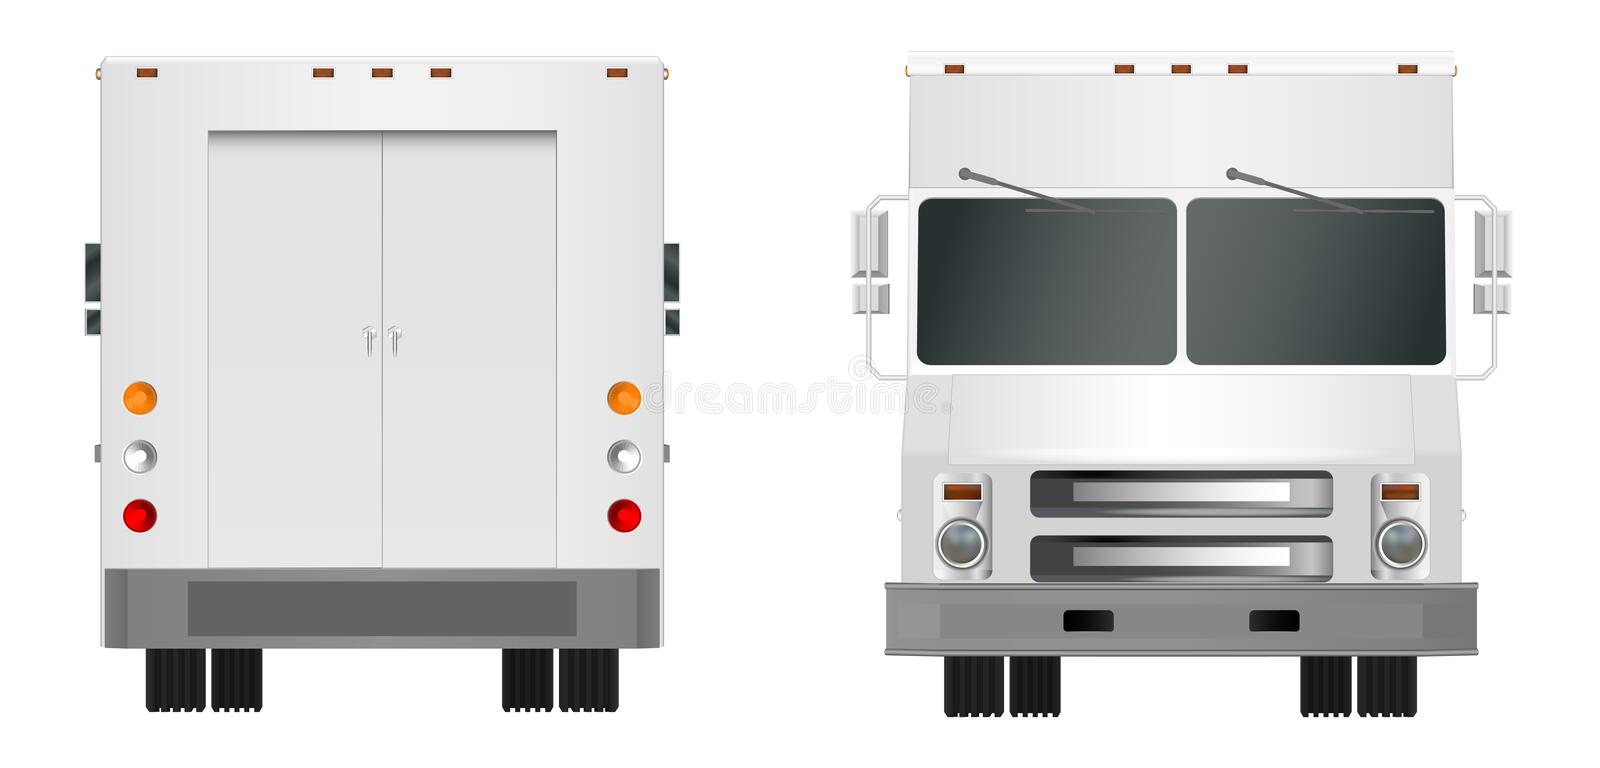 White truck template. Cargo van Vector illustration EPS 10 isolated on white background. City commercial vehicle delivery. royalty free illustration